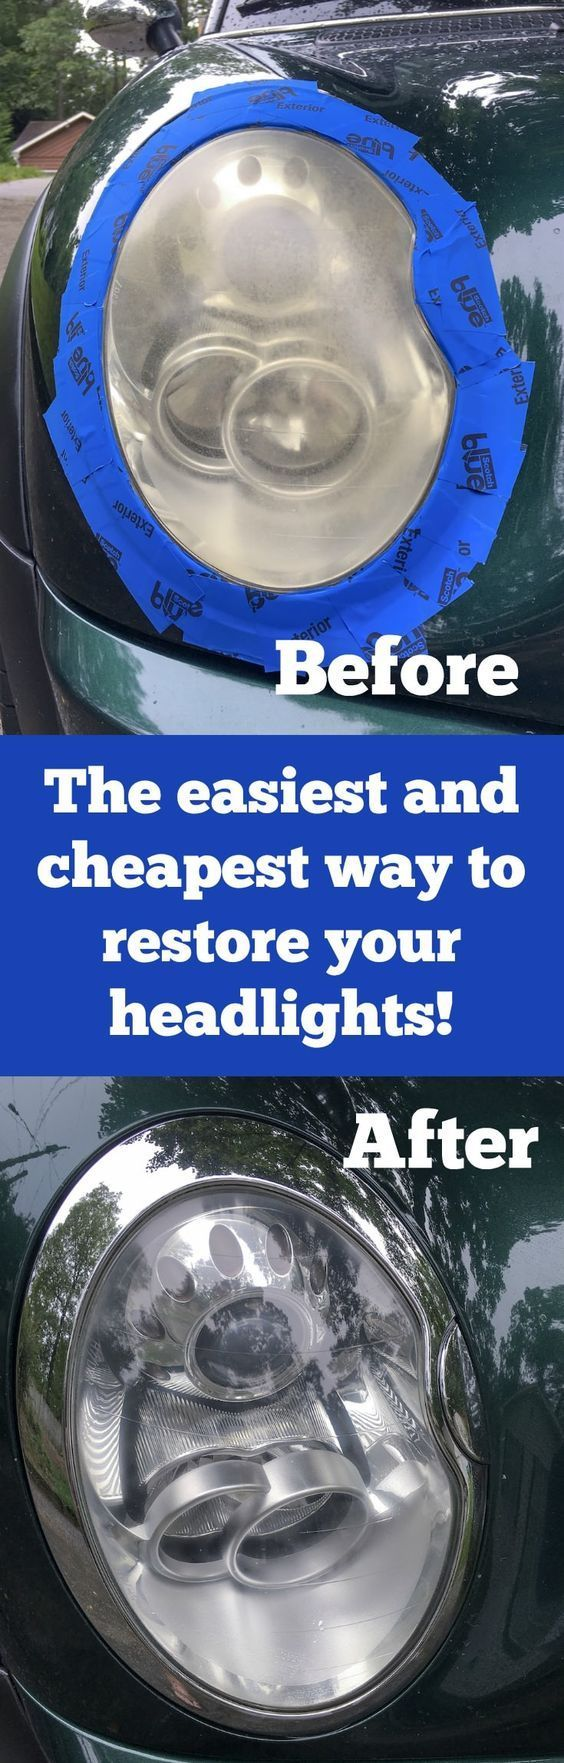 We found the best DIY headlight restoration kit, and want to share our process with you. Search for products no more - this restores your headlights inexpensively and in 30 minutes. Works WAY better than baking soda and toothpaste and lasts longer. via @diy_candy